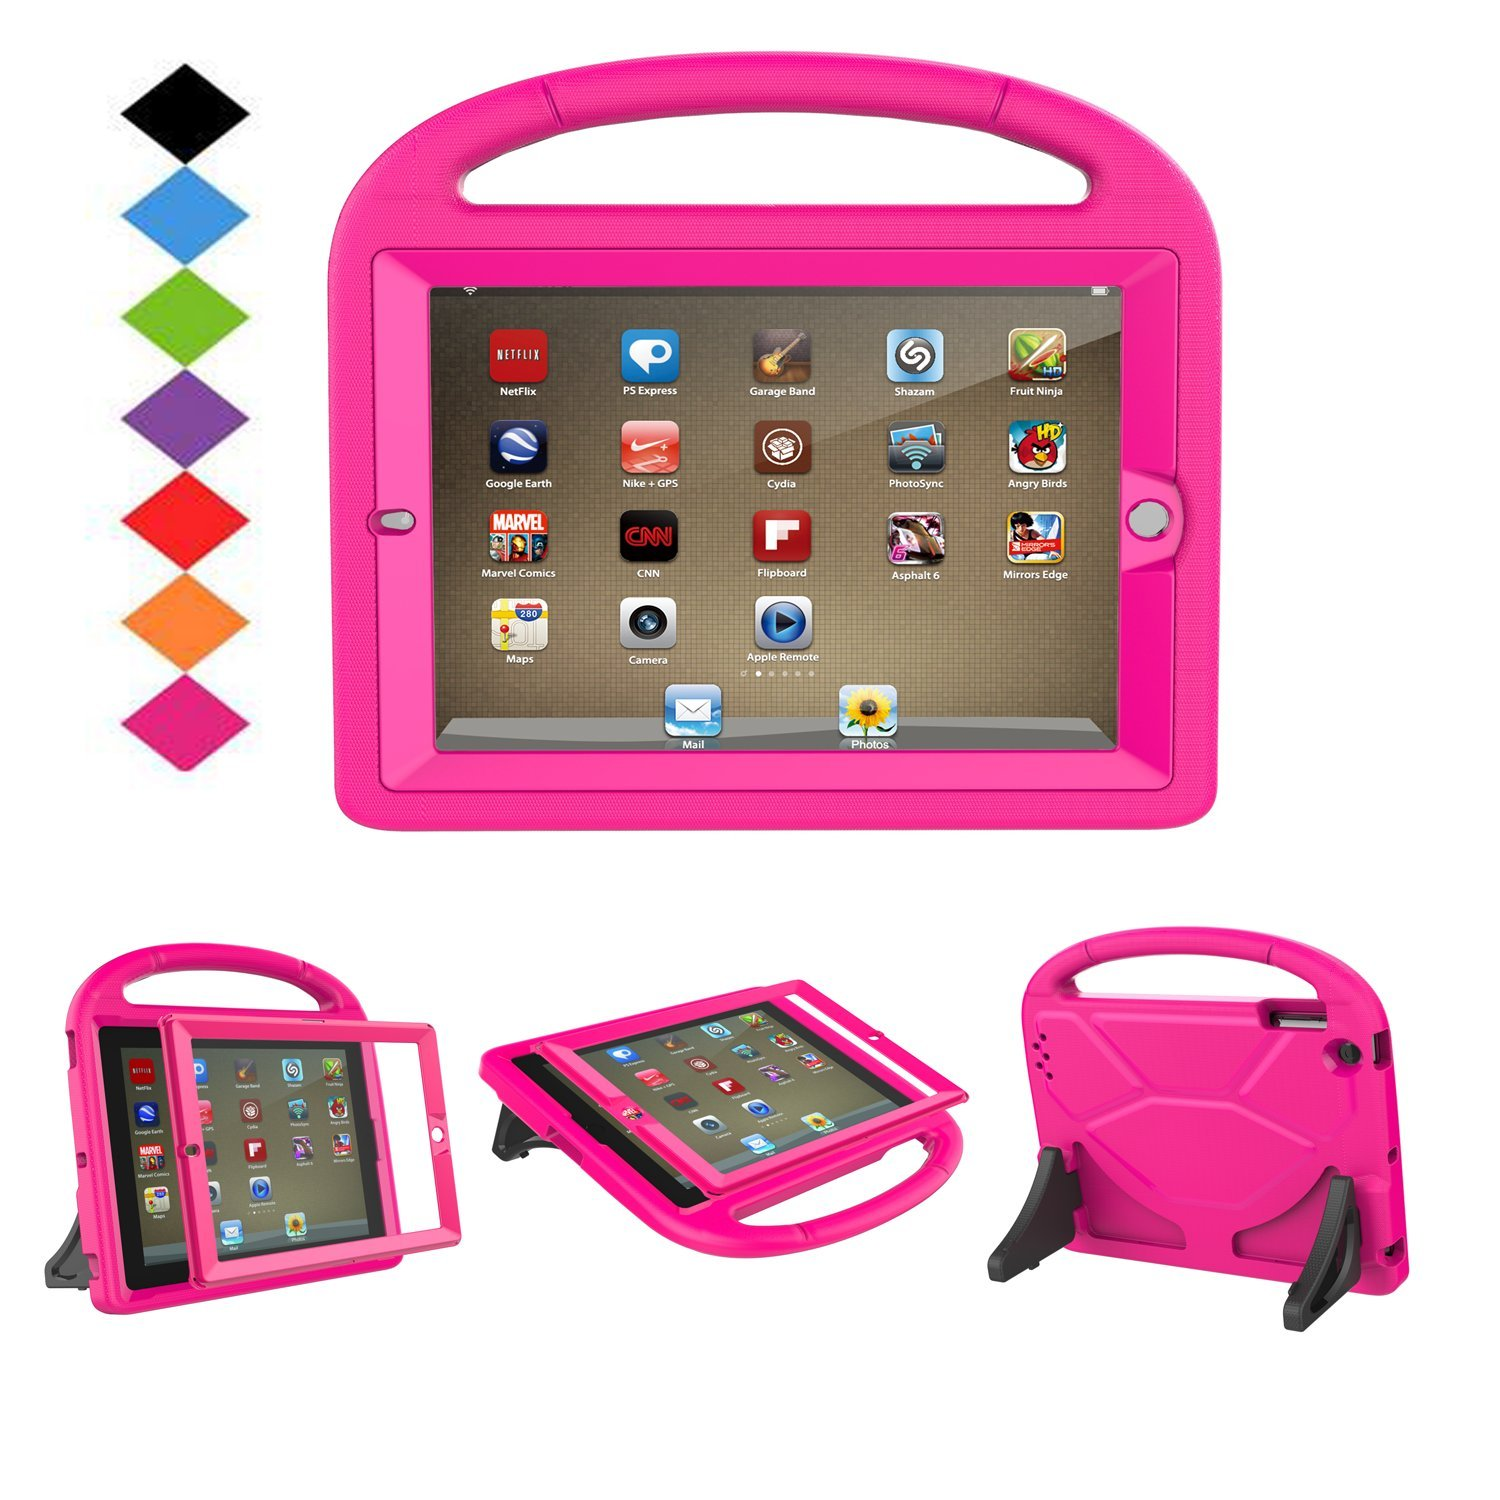 LTROP iPad 2 3 4 Kids Case - Light Weight Shock Proof Handle Friendly Convertible Stand Kids Case with Bulit in Screen Protector for iPad 2, iPad 3rd Generation, iPad 4th Generation,Rose by LTROP (Image #1)